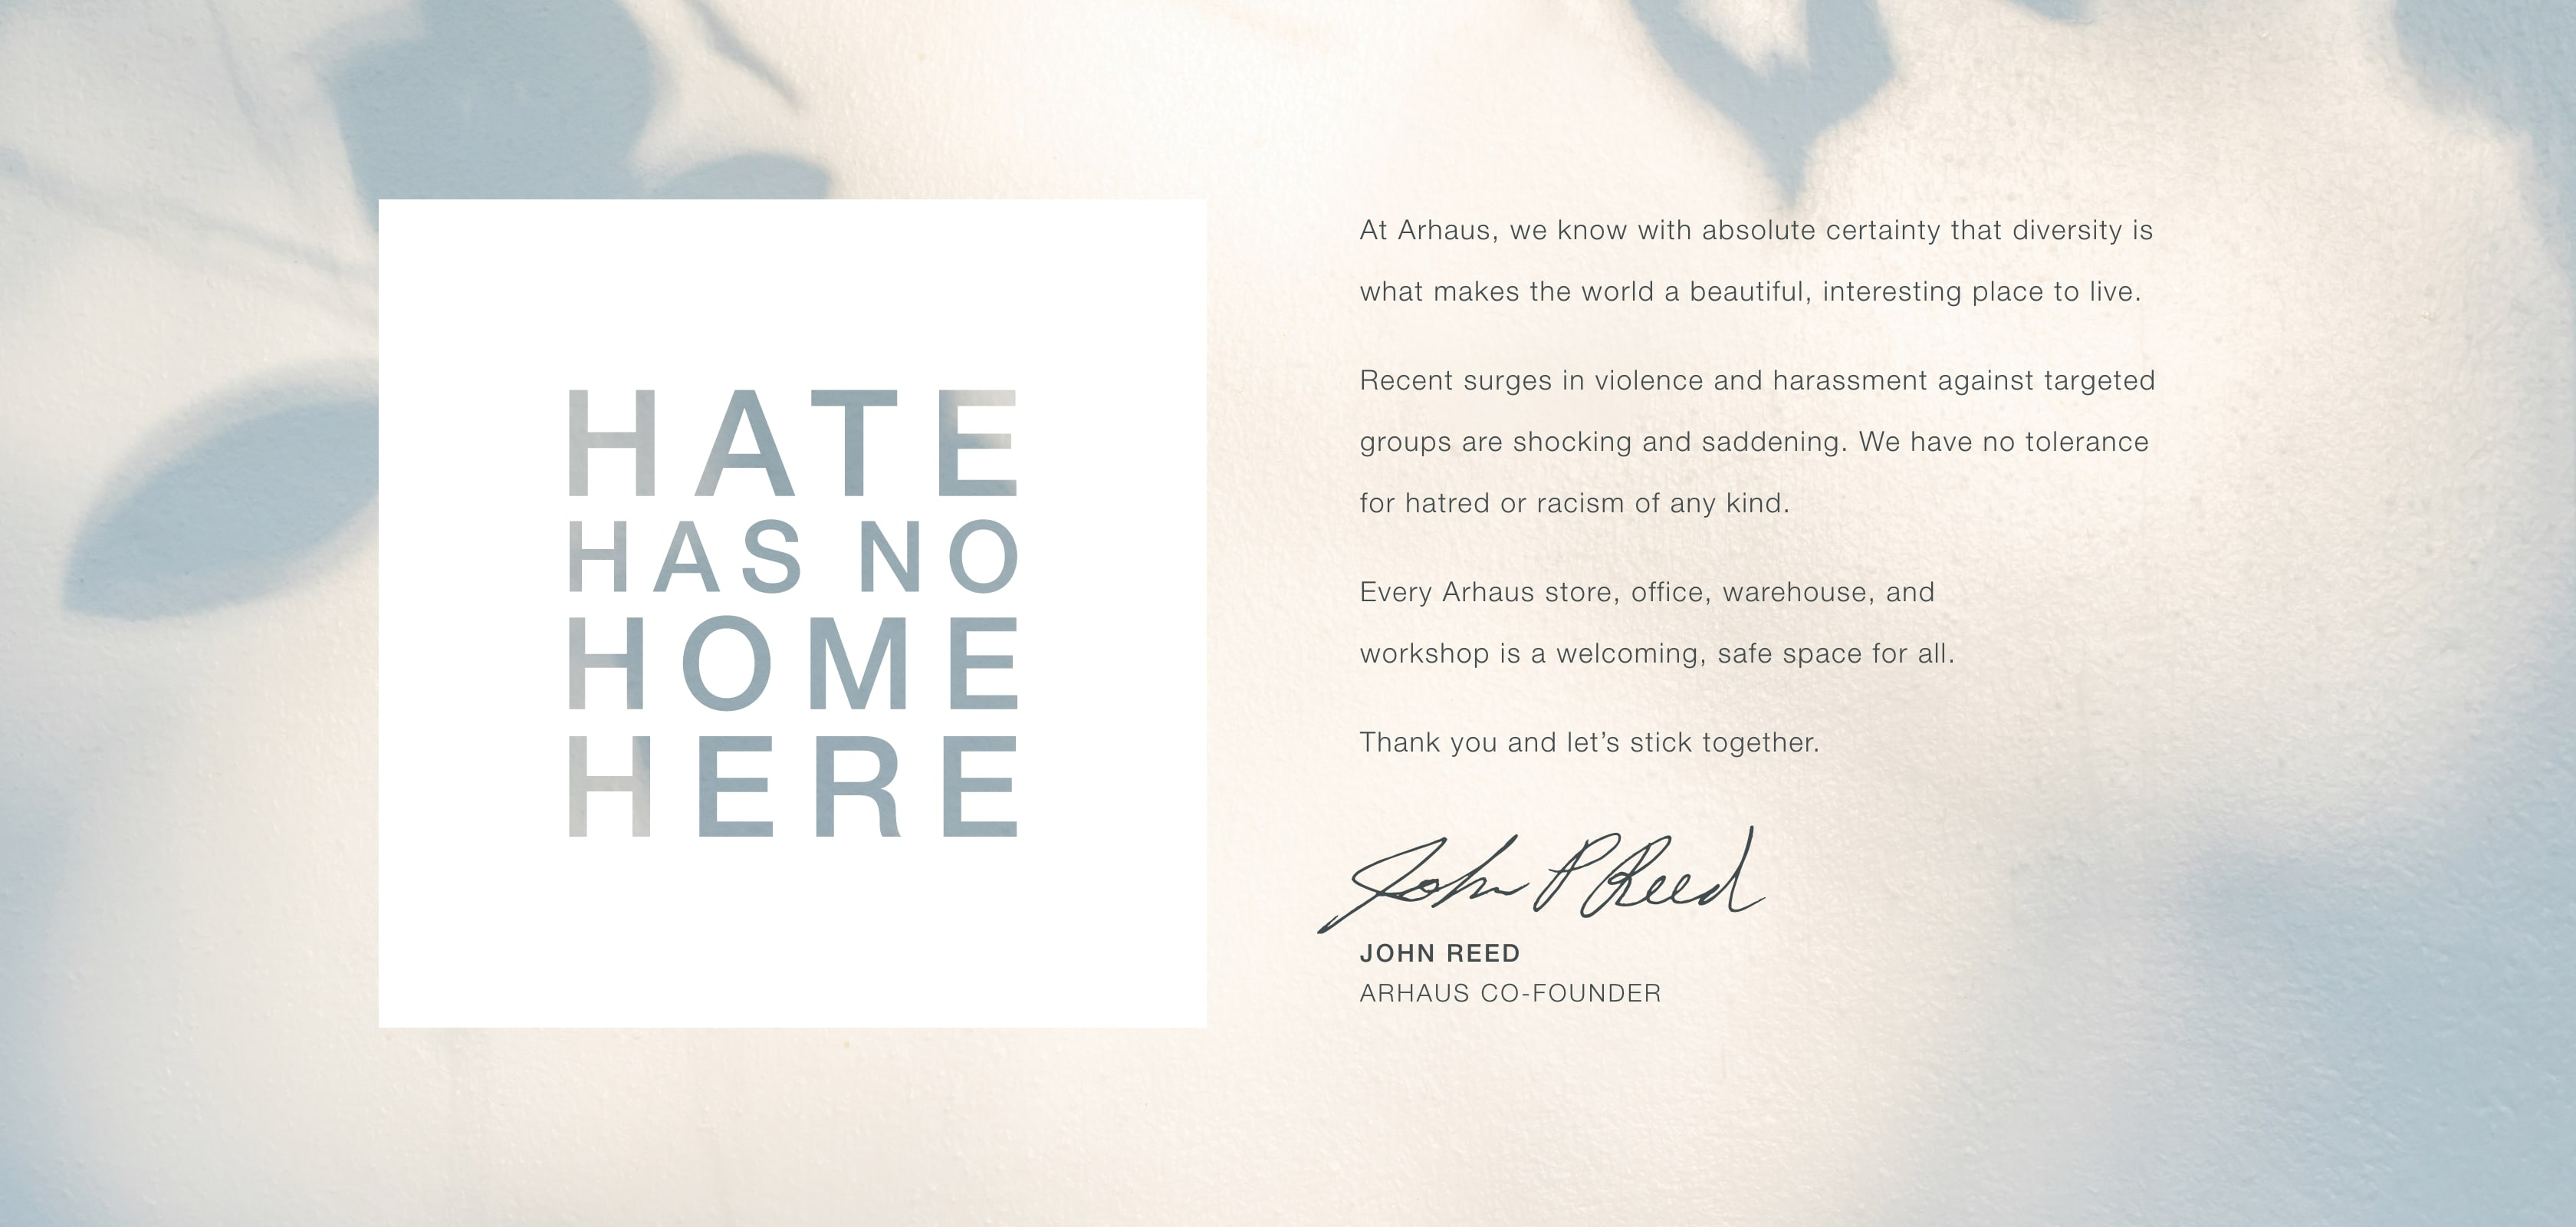 Hate Has No Home Here - Arhaus is committed to being a safe and welcoming space for all